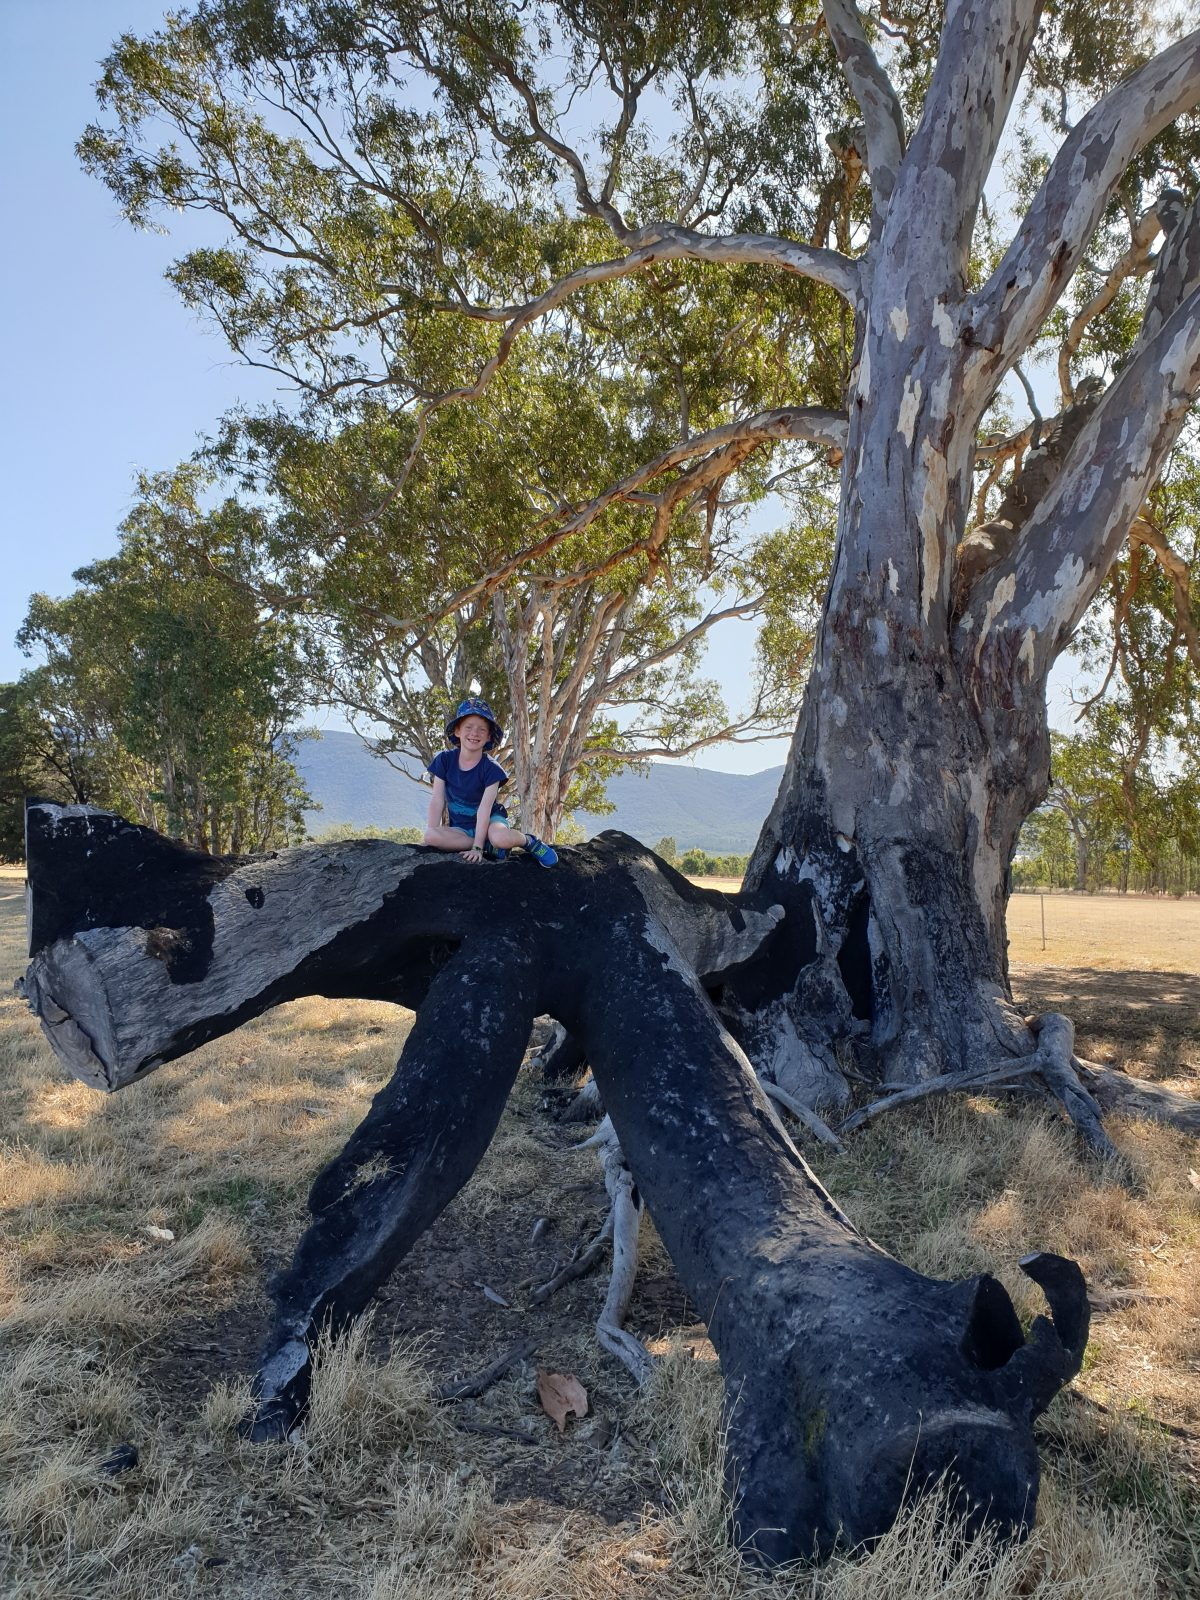 Eastern Grampians With Kids